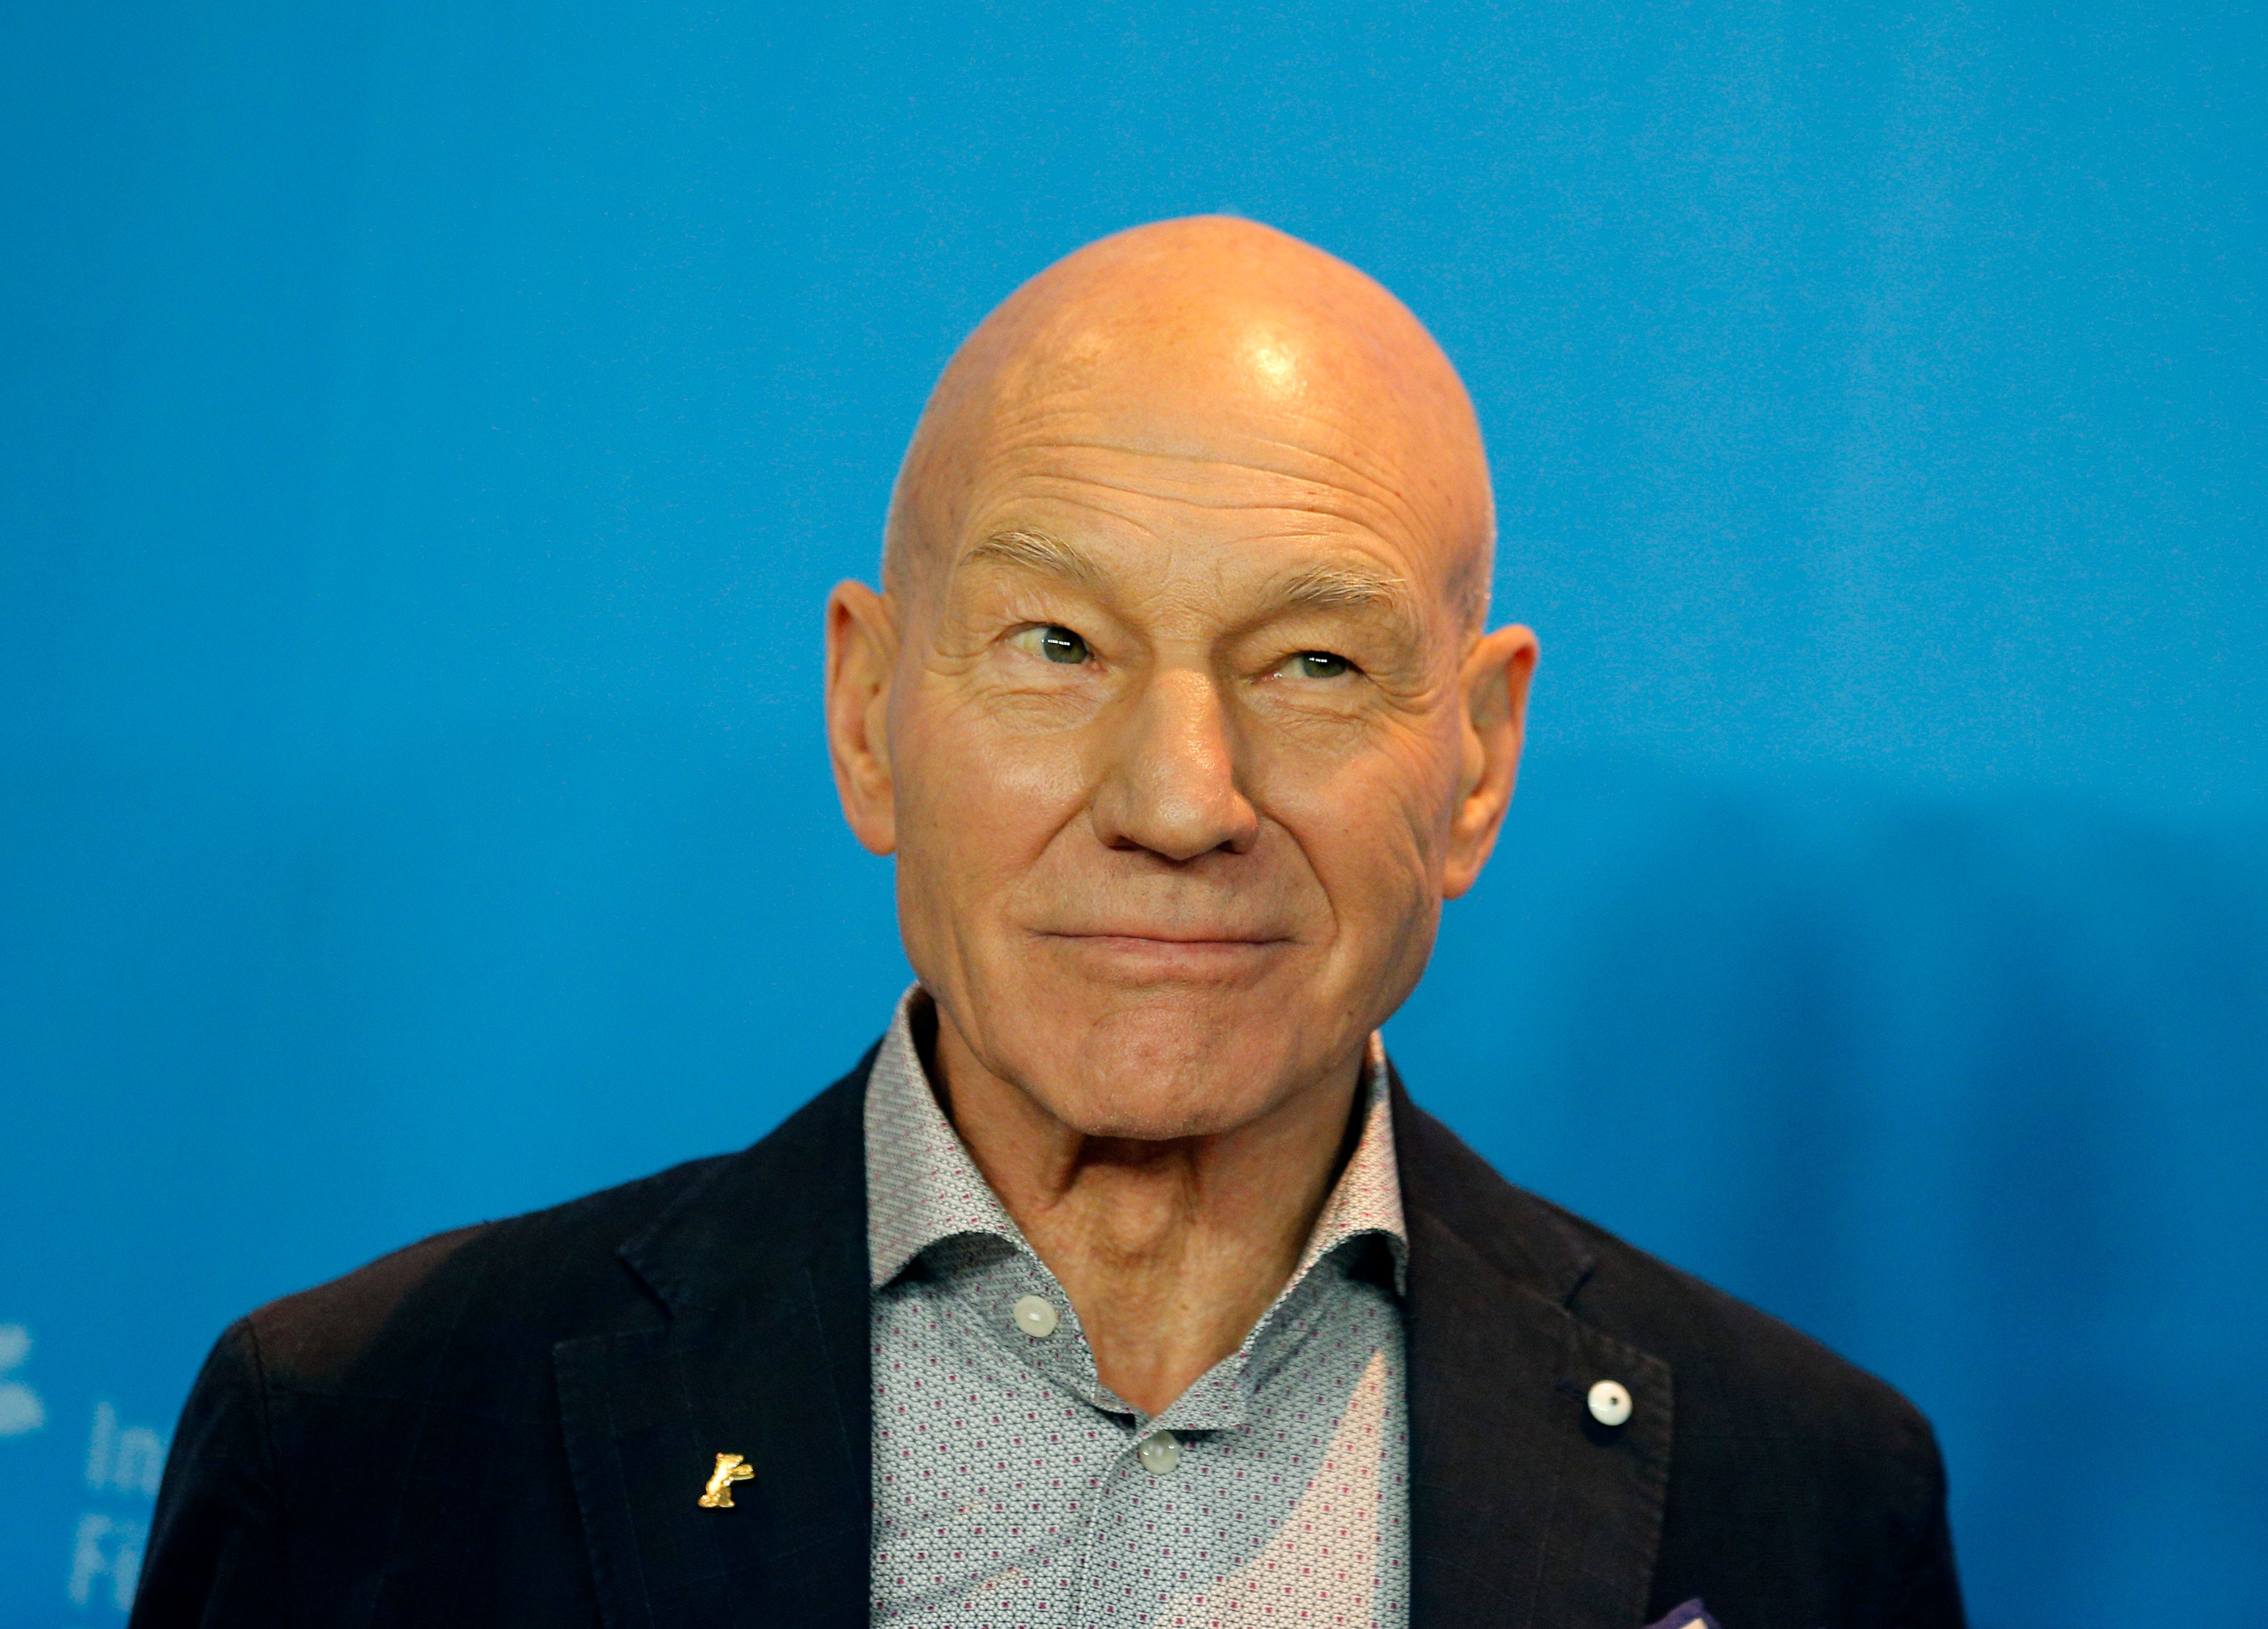 Actor Patrick Stewart poses during a photocall to promote the movie 'Logan' at the 67th Berlinale International Film Festival in Berlin, February 17, 2017.        REUTERS/Axel Schmidt